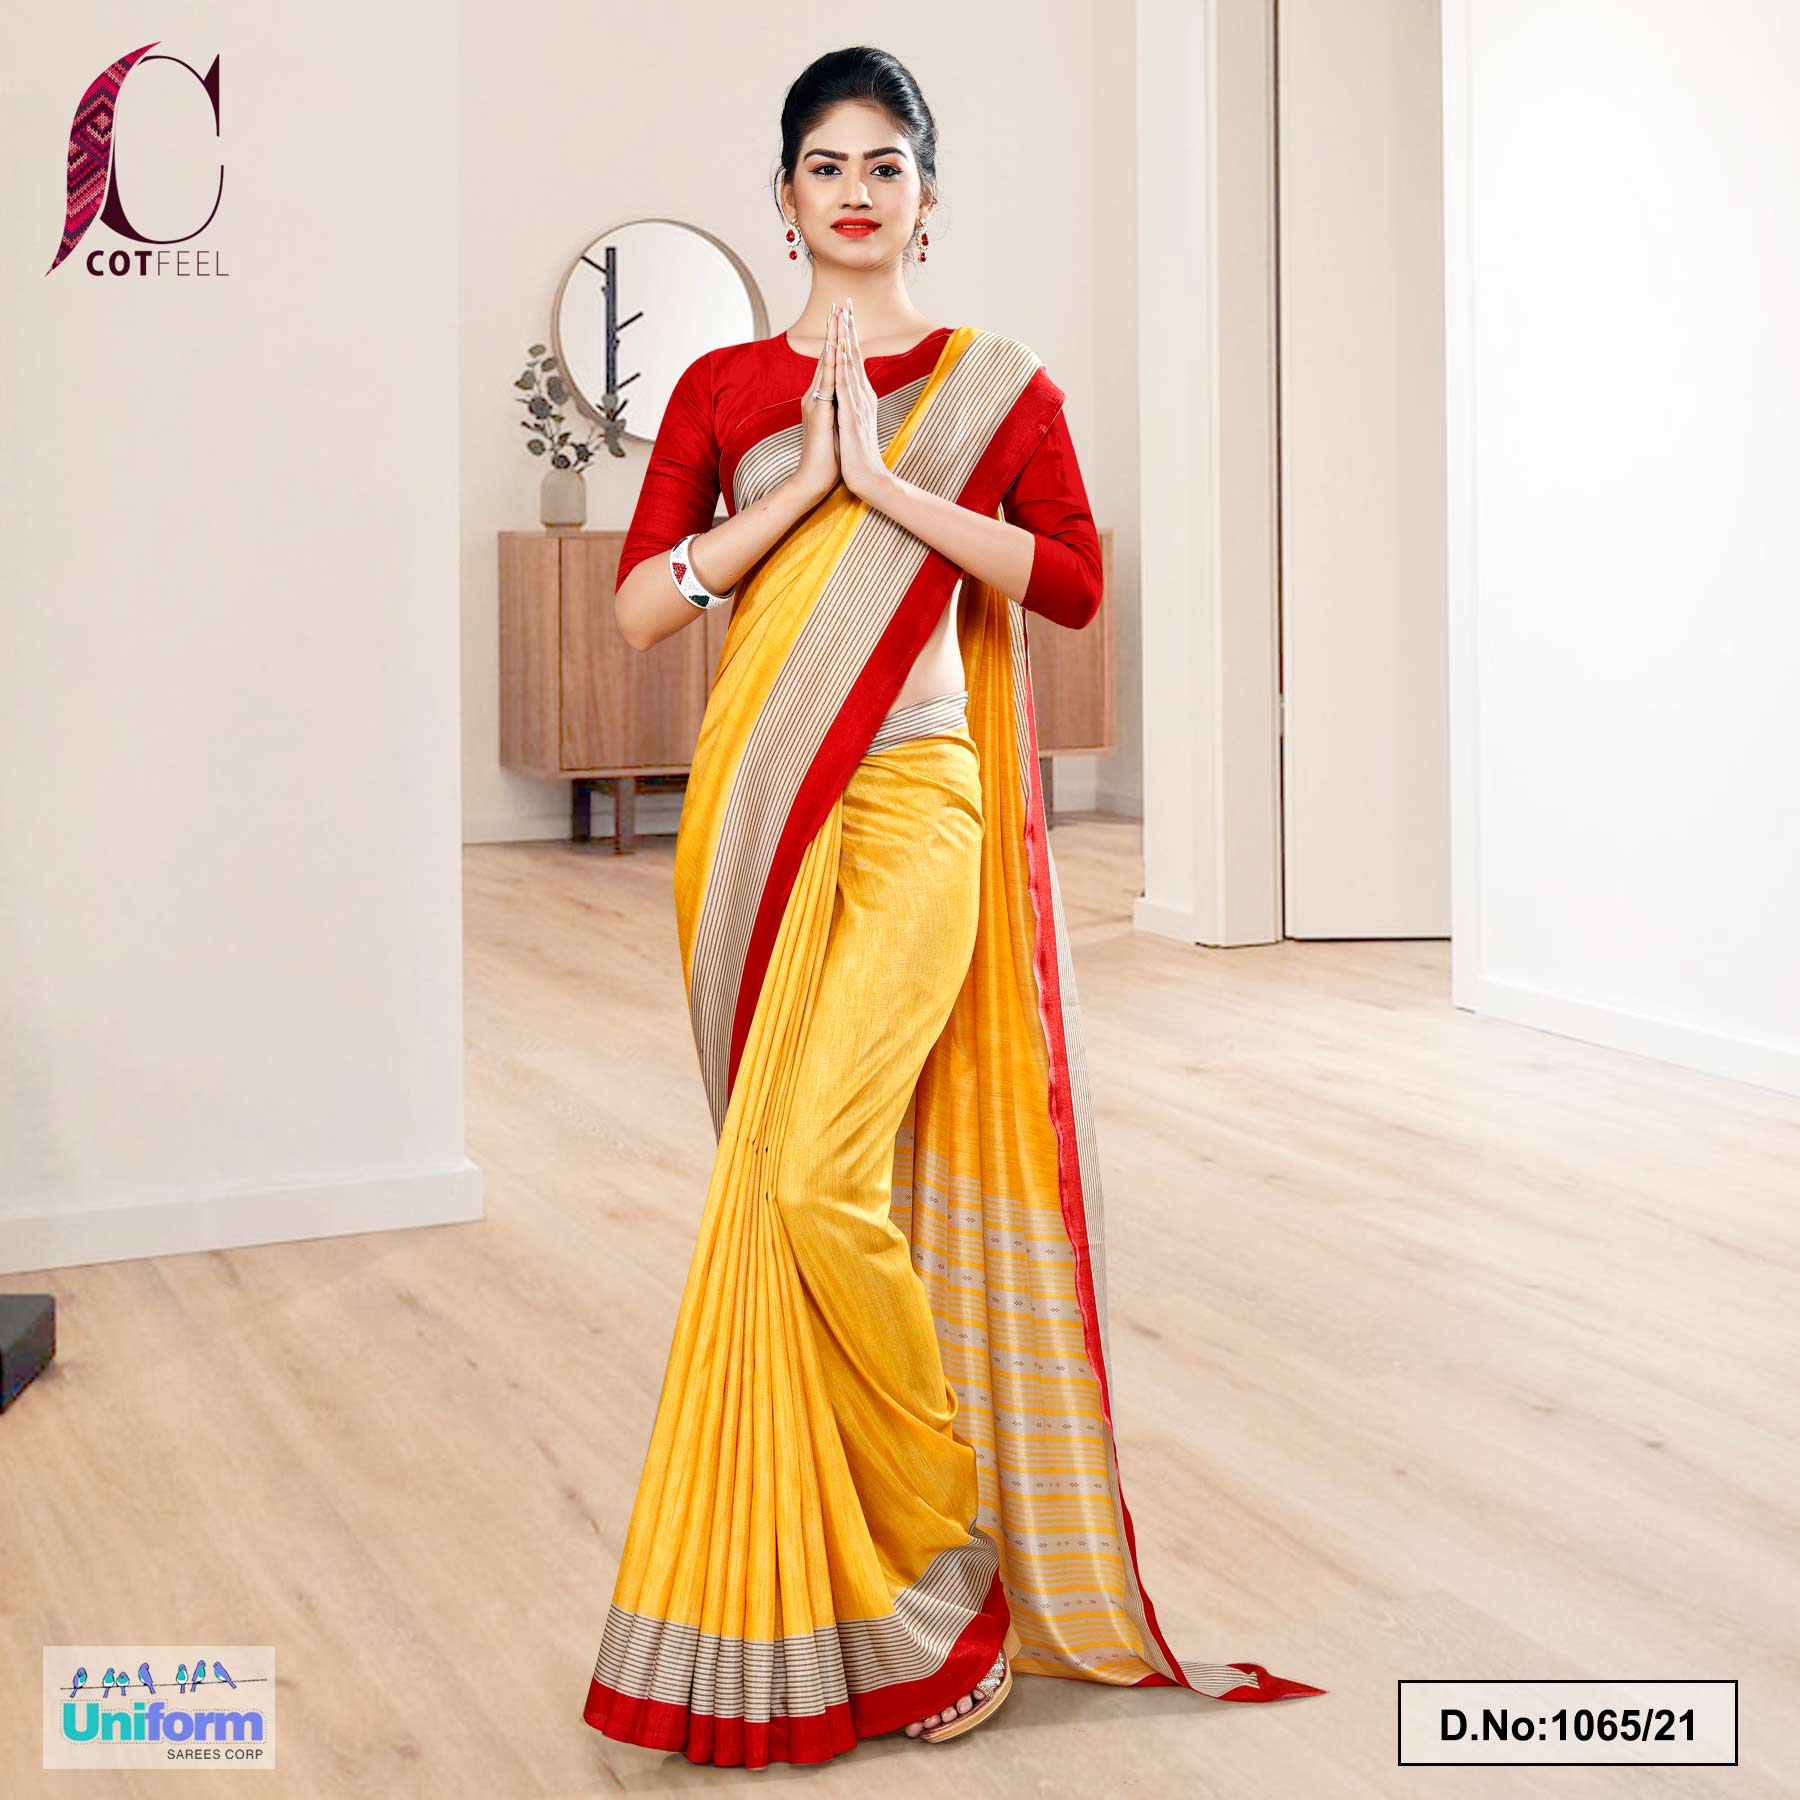 Yellow Red Plain Border Premium Polycotton CotFeel Saree for Student Uniform Sarees